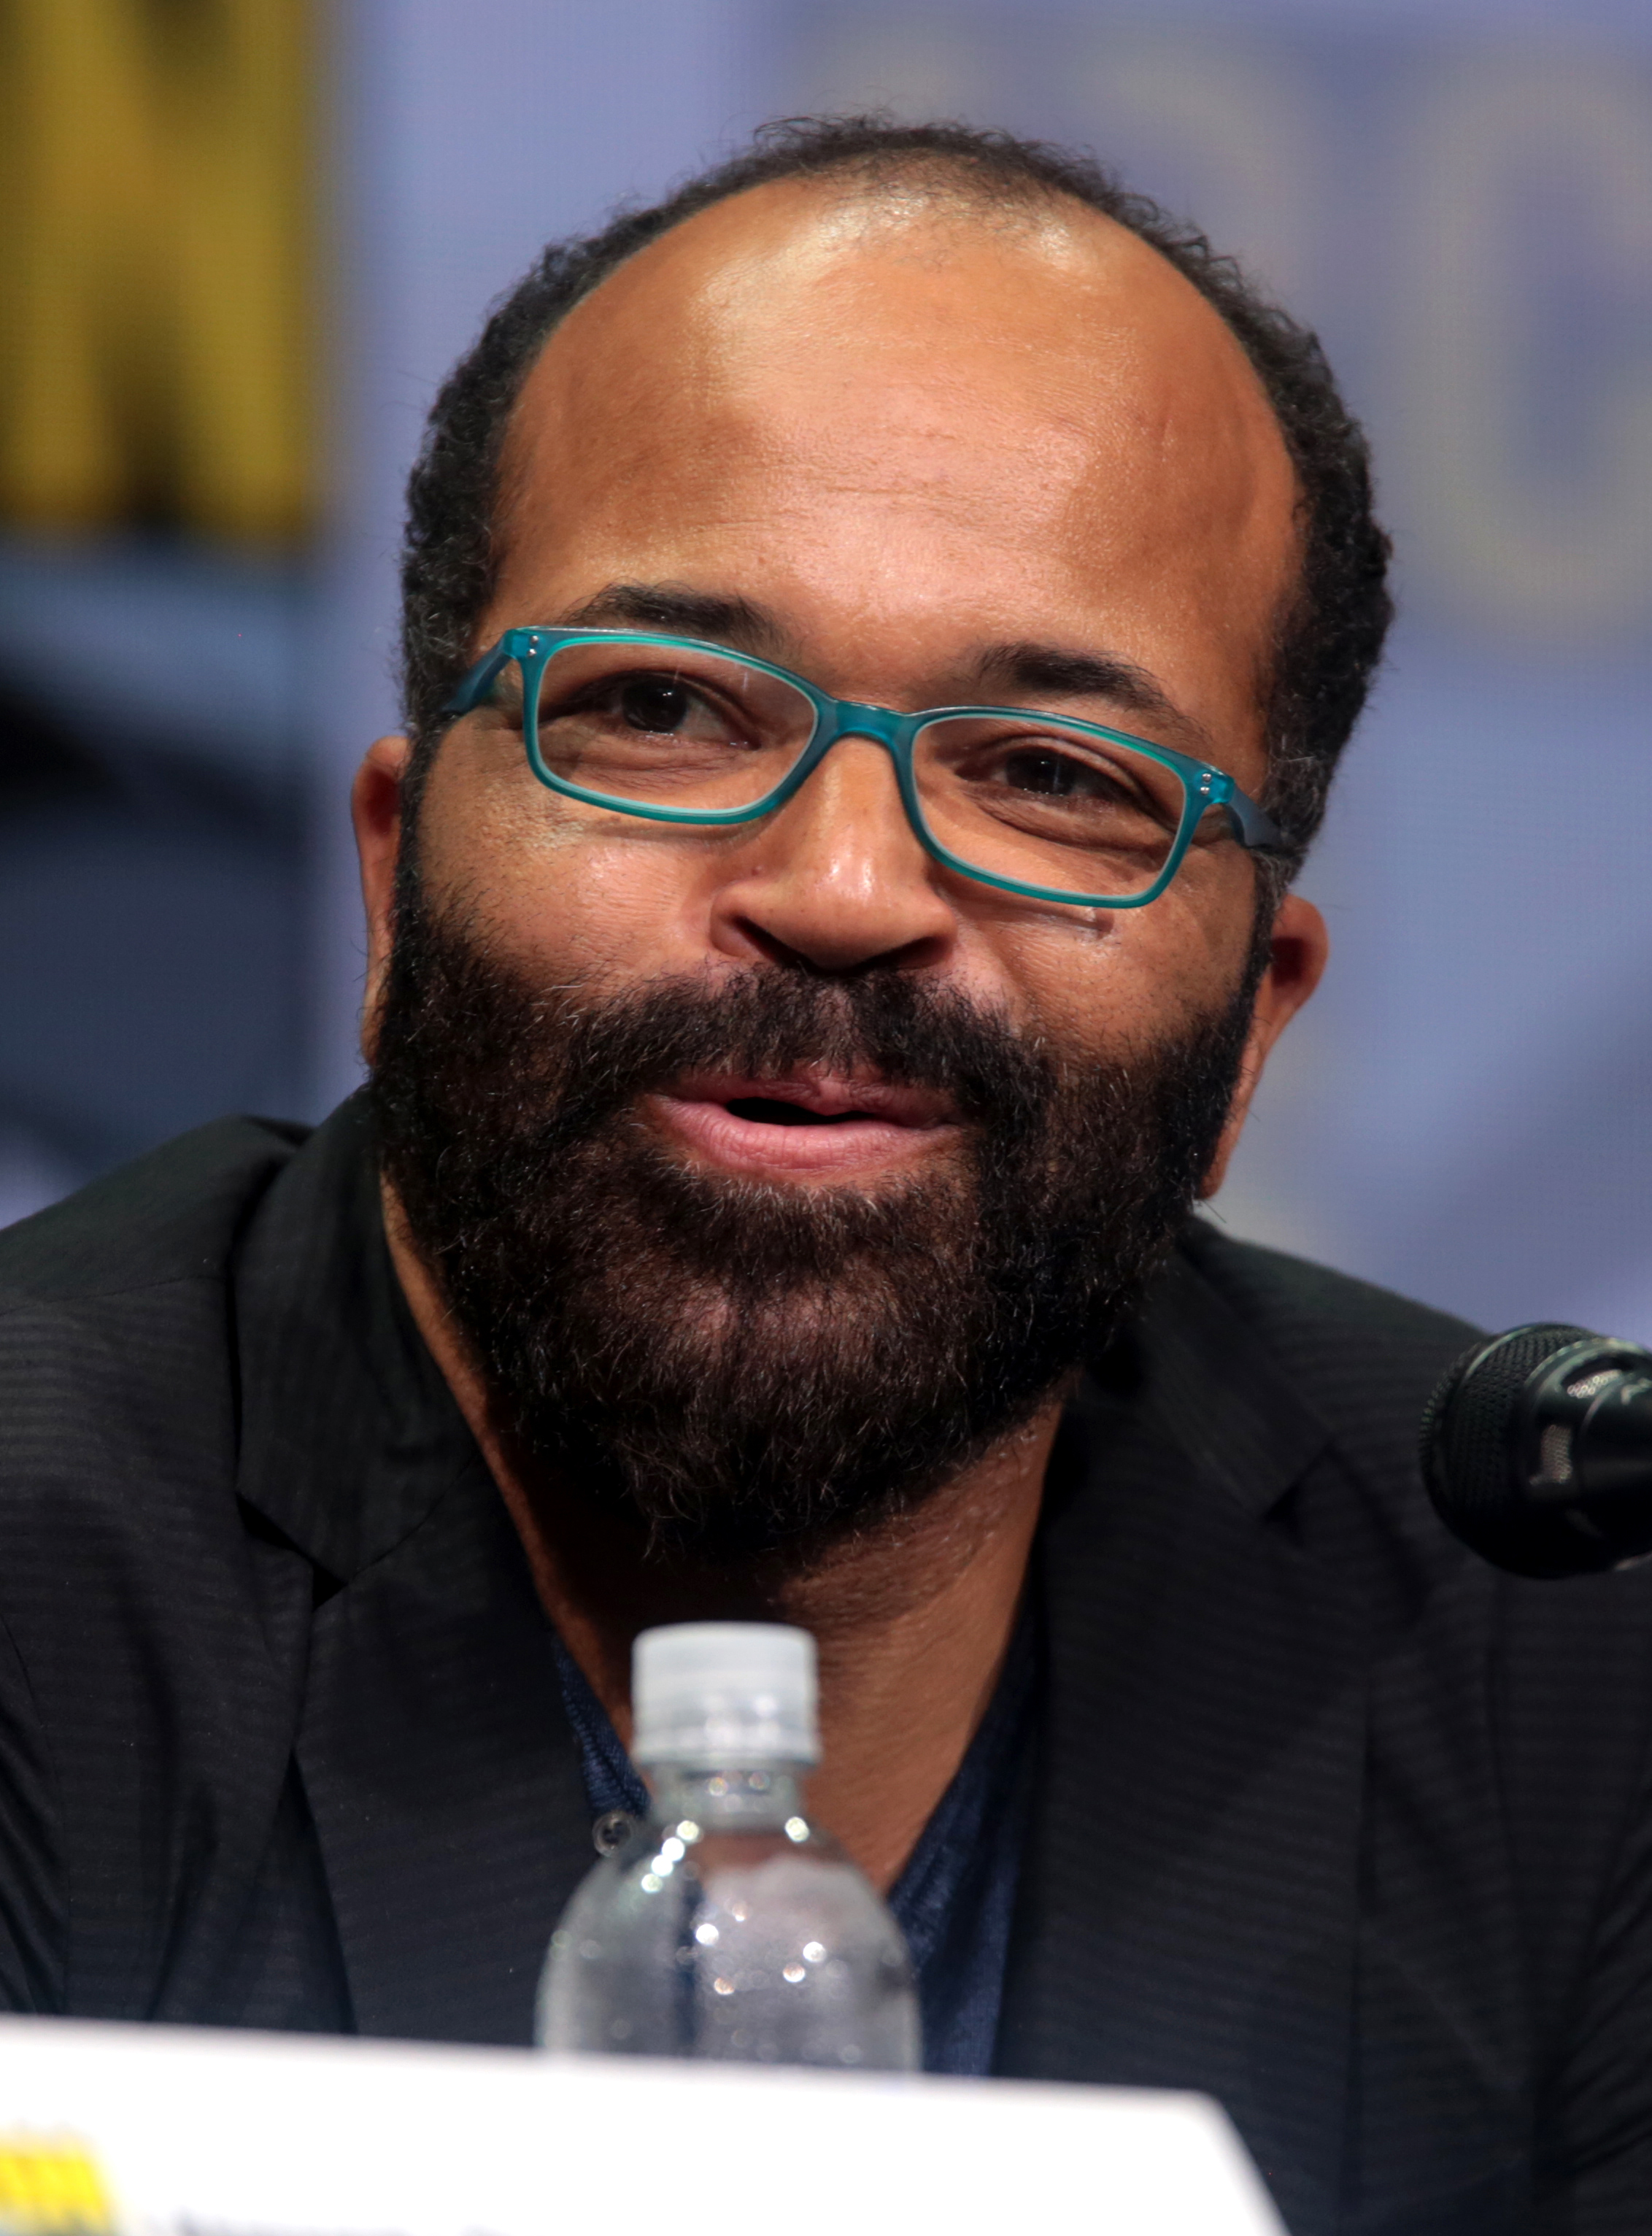 The 52-year old son of father (?) and mother(?) Jeffrey Wright in 2018 photo. Jeffrey Wright earned a  million dollar salary - leaving the net worth at 5 million in 2018